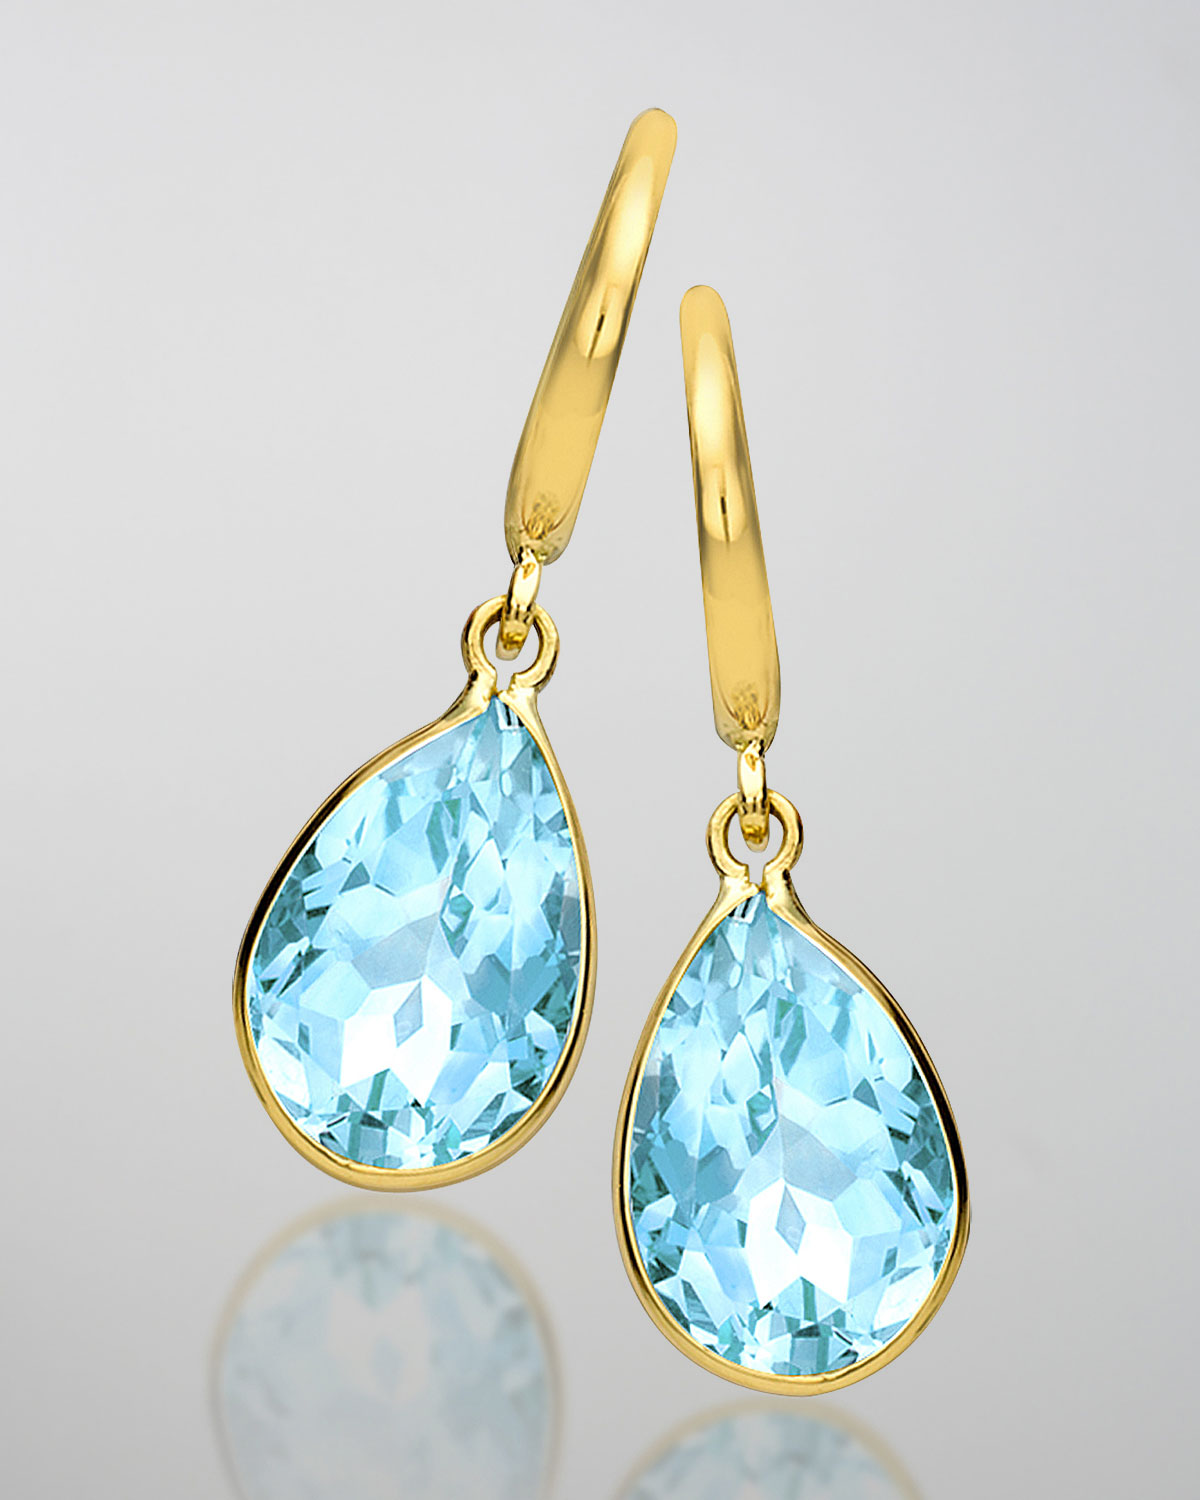 Kiki Mcdonough 18k Gold Eternal Blue Topaz Teardrop